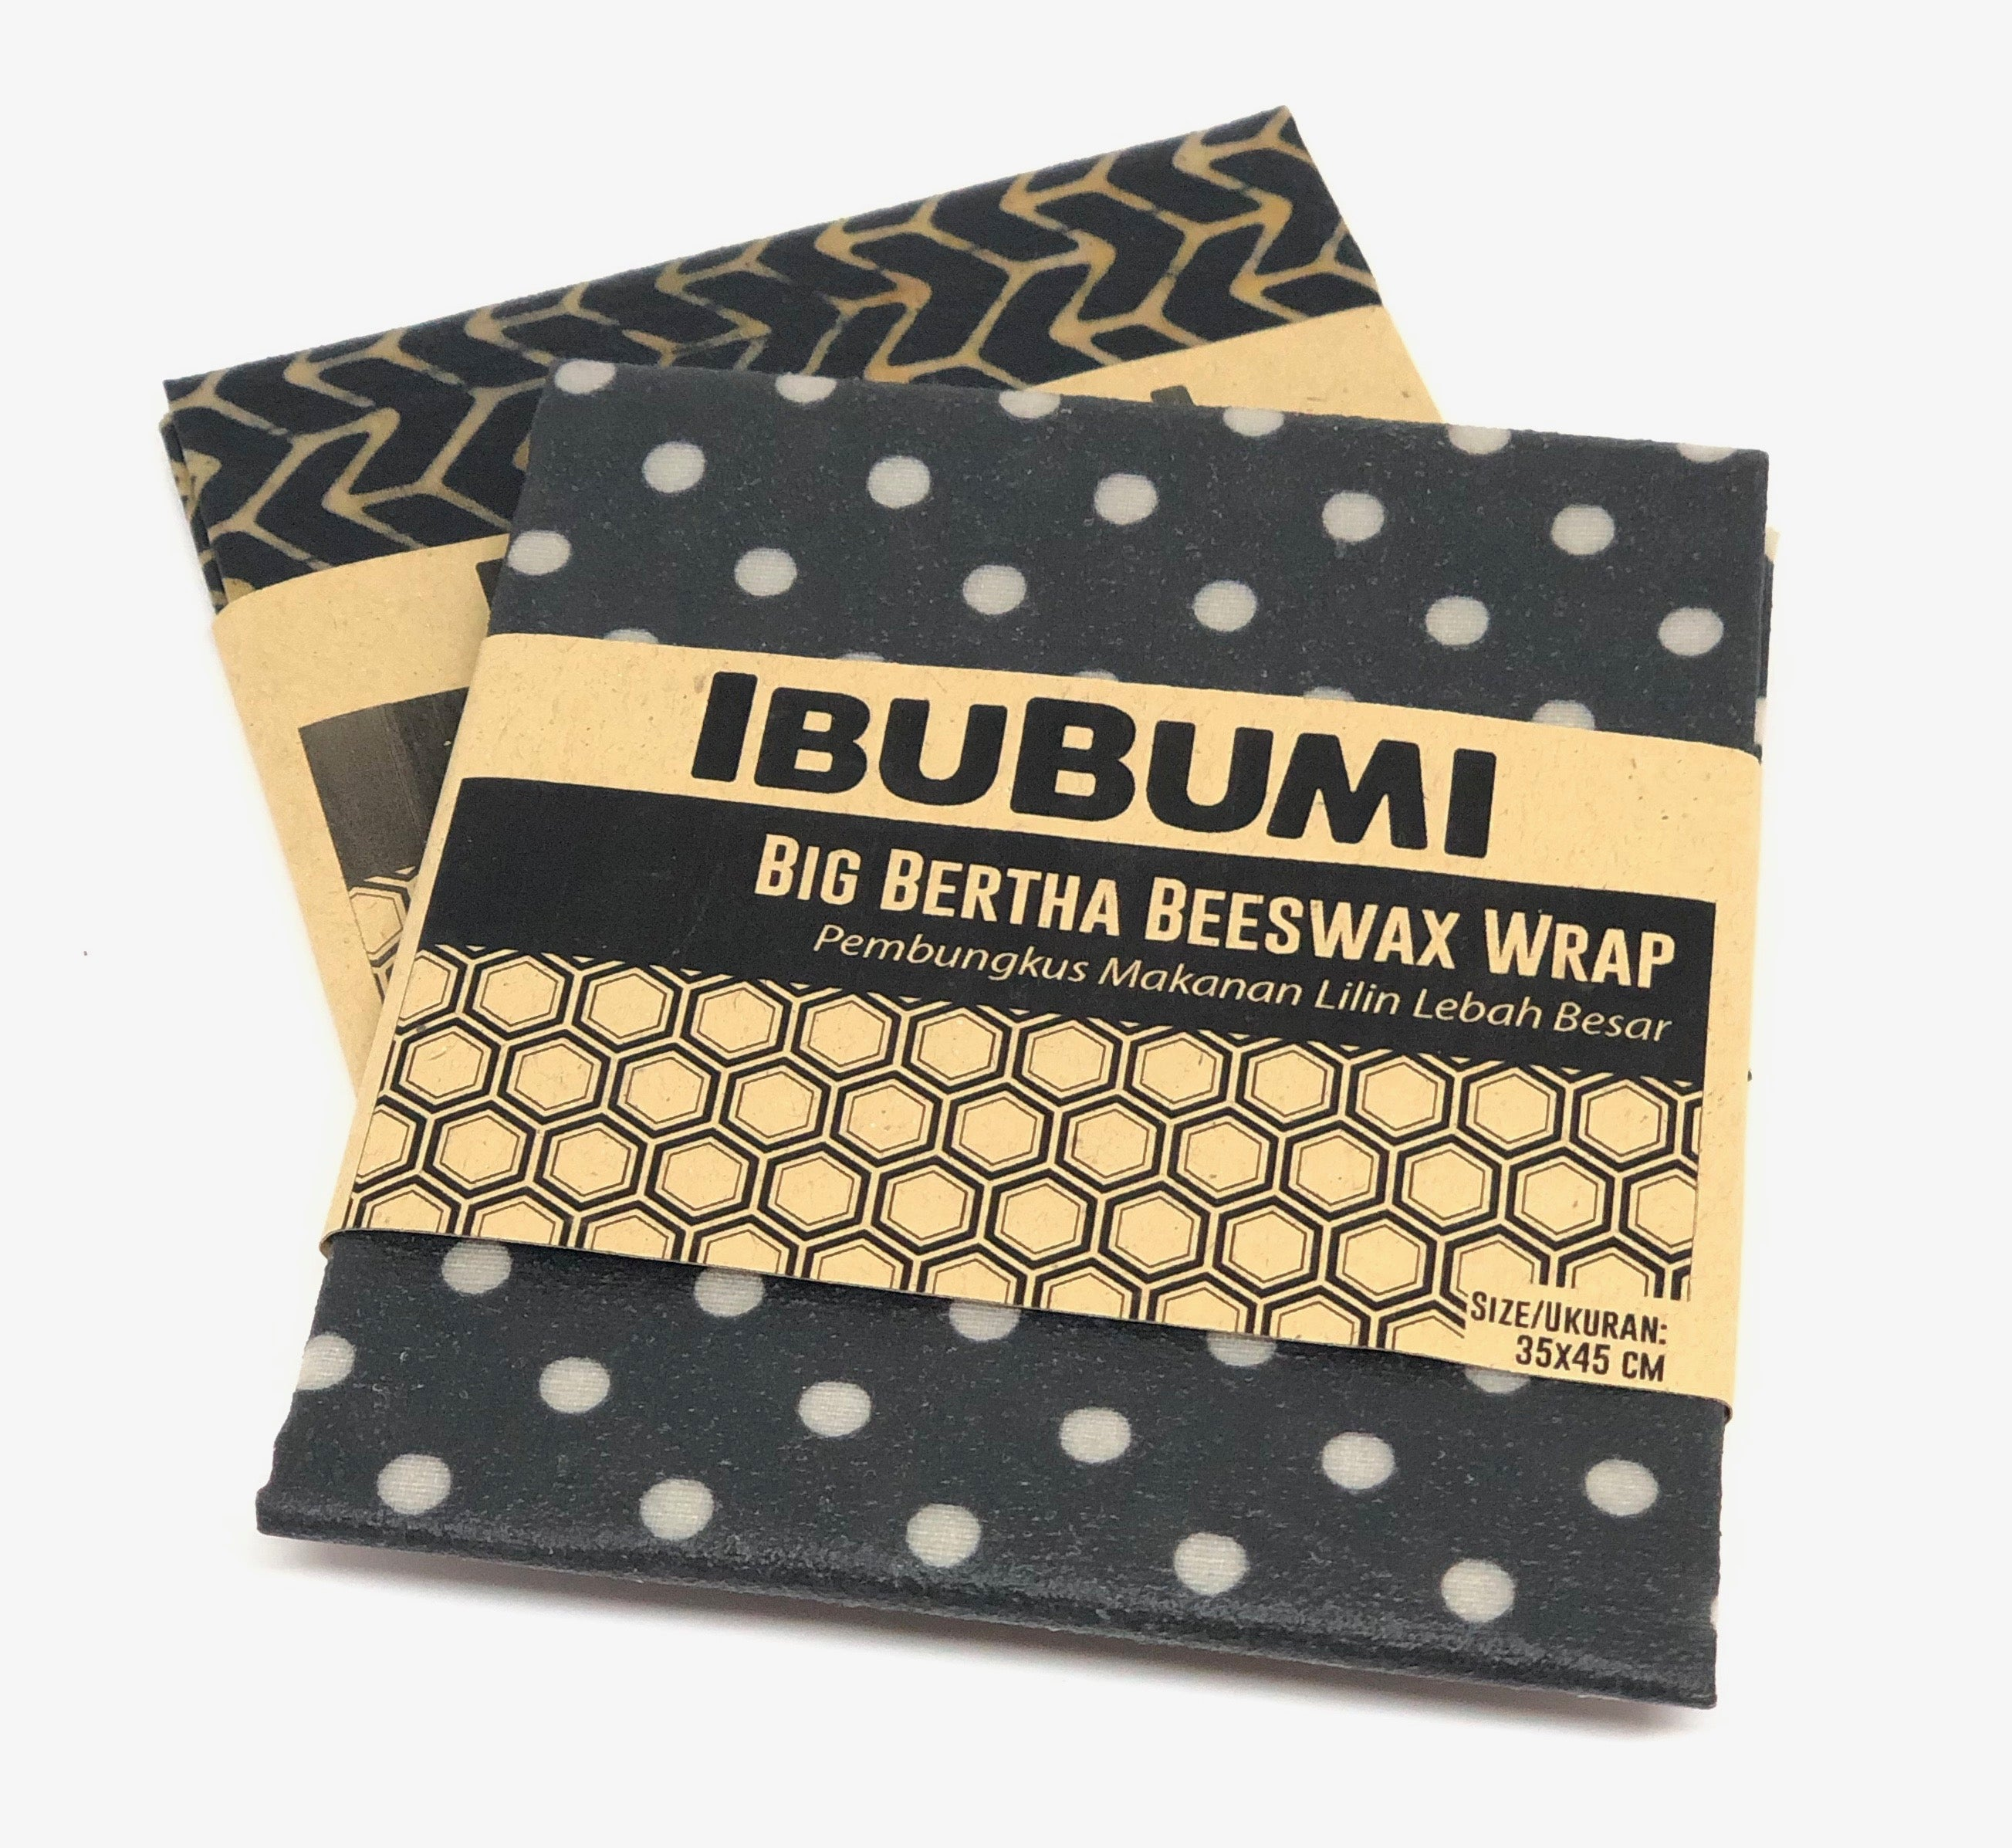 Big Bertha Beeswax Wrap